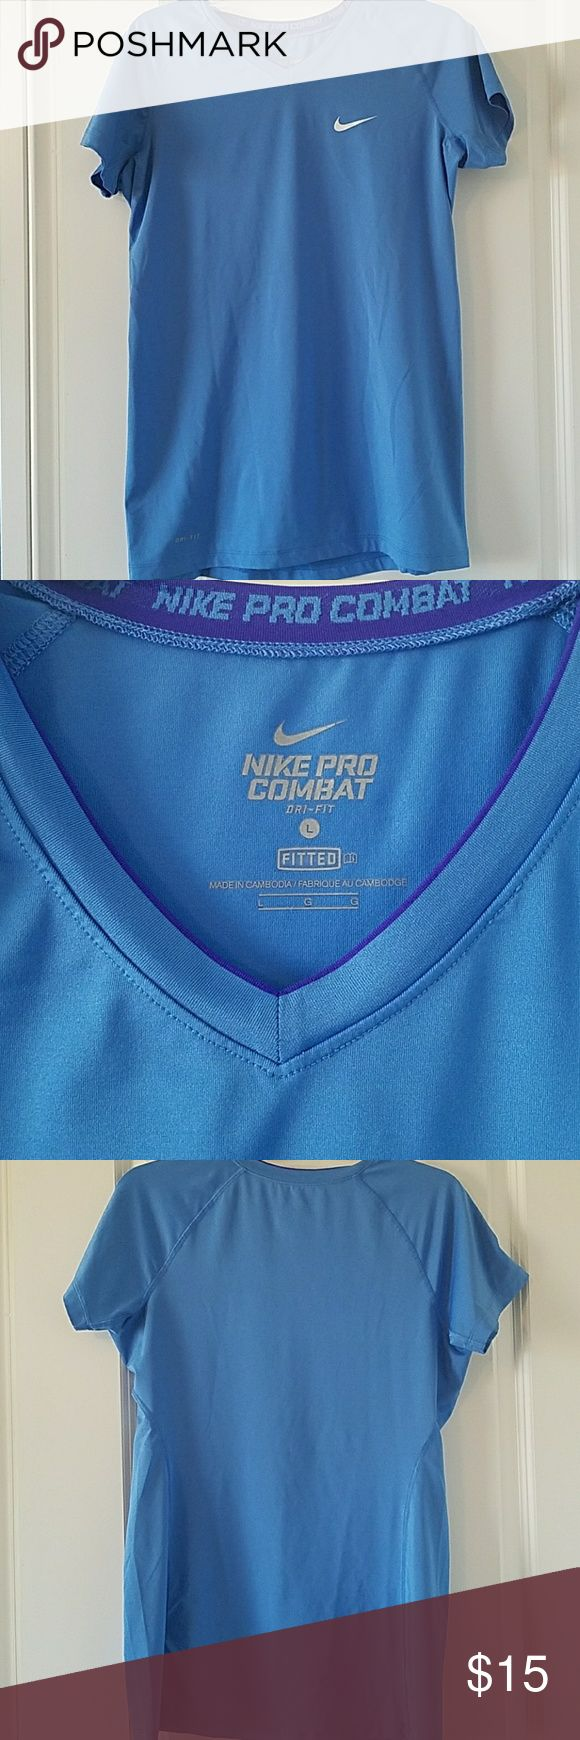 Nike Pro Combat Dri-Fit Short Sleeve Shirt Great light blue color.  Fitted.  EUC Nike Tops Tees - Short Sleeve